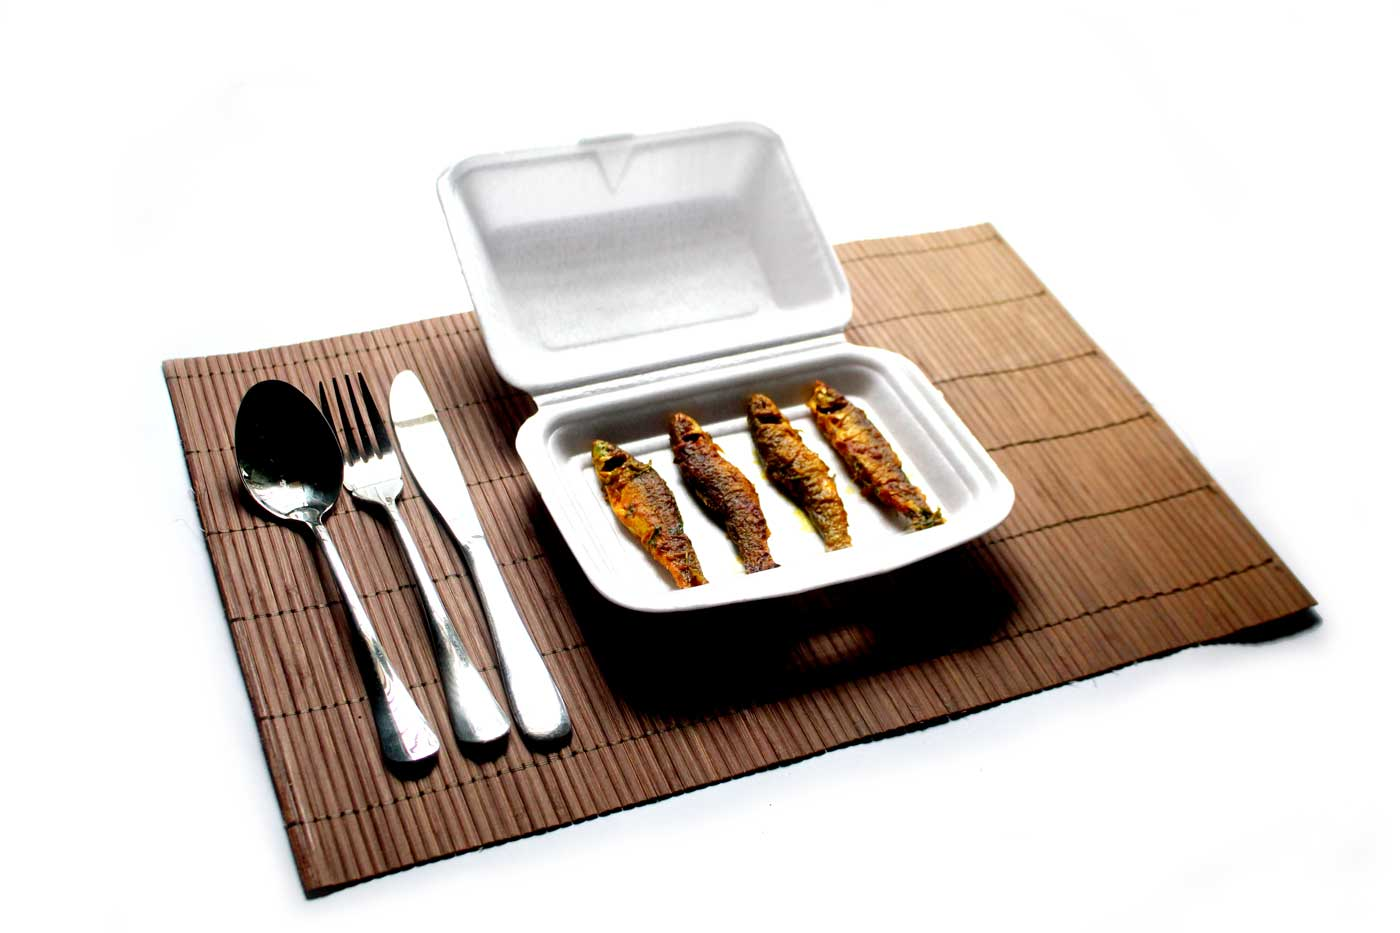 fish fry and spoon, food package